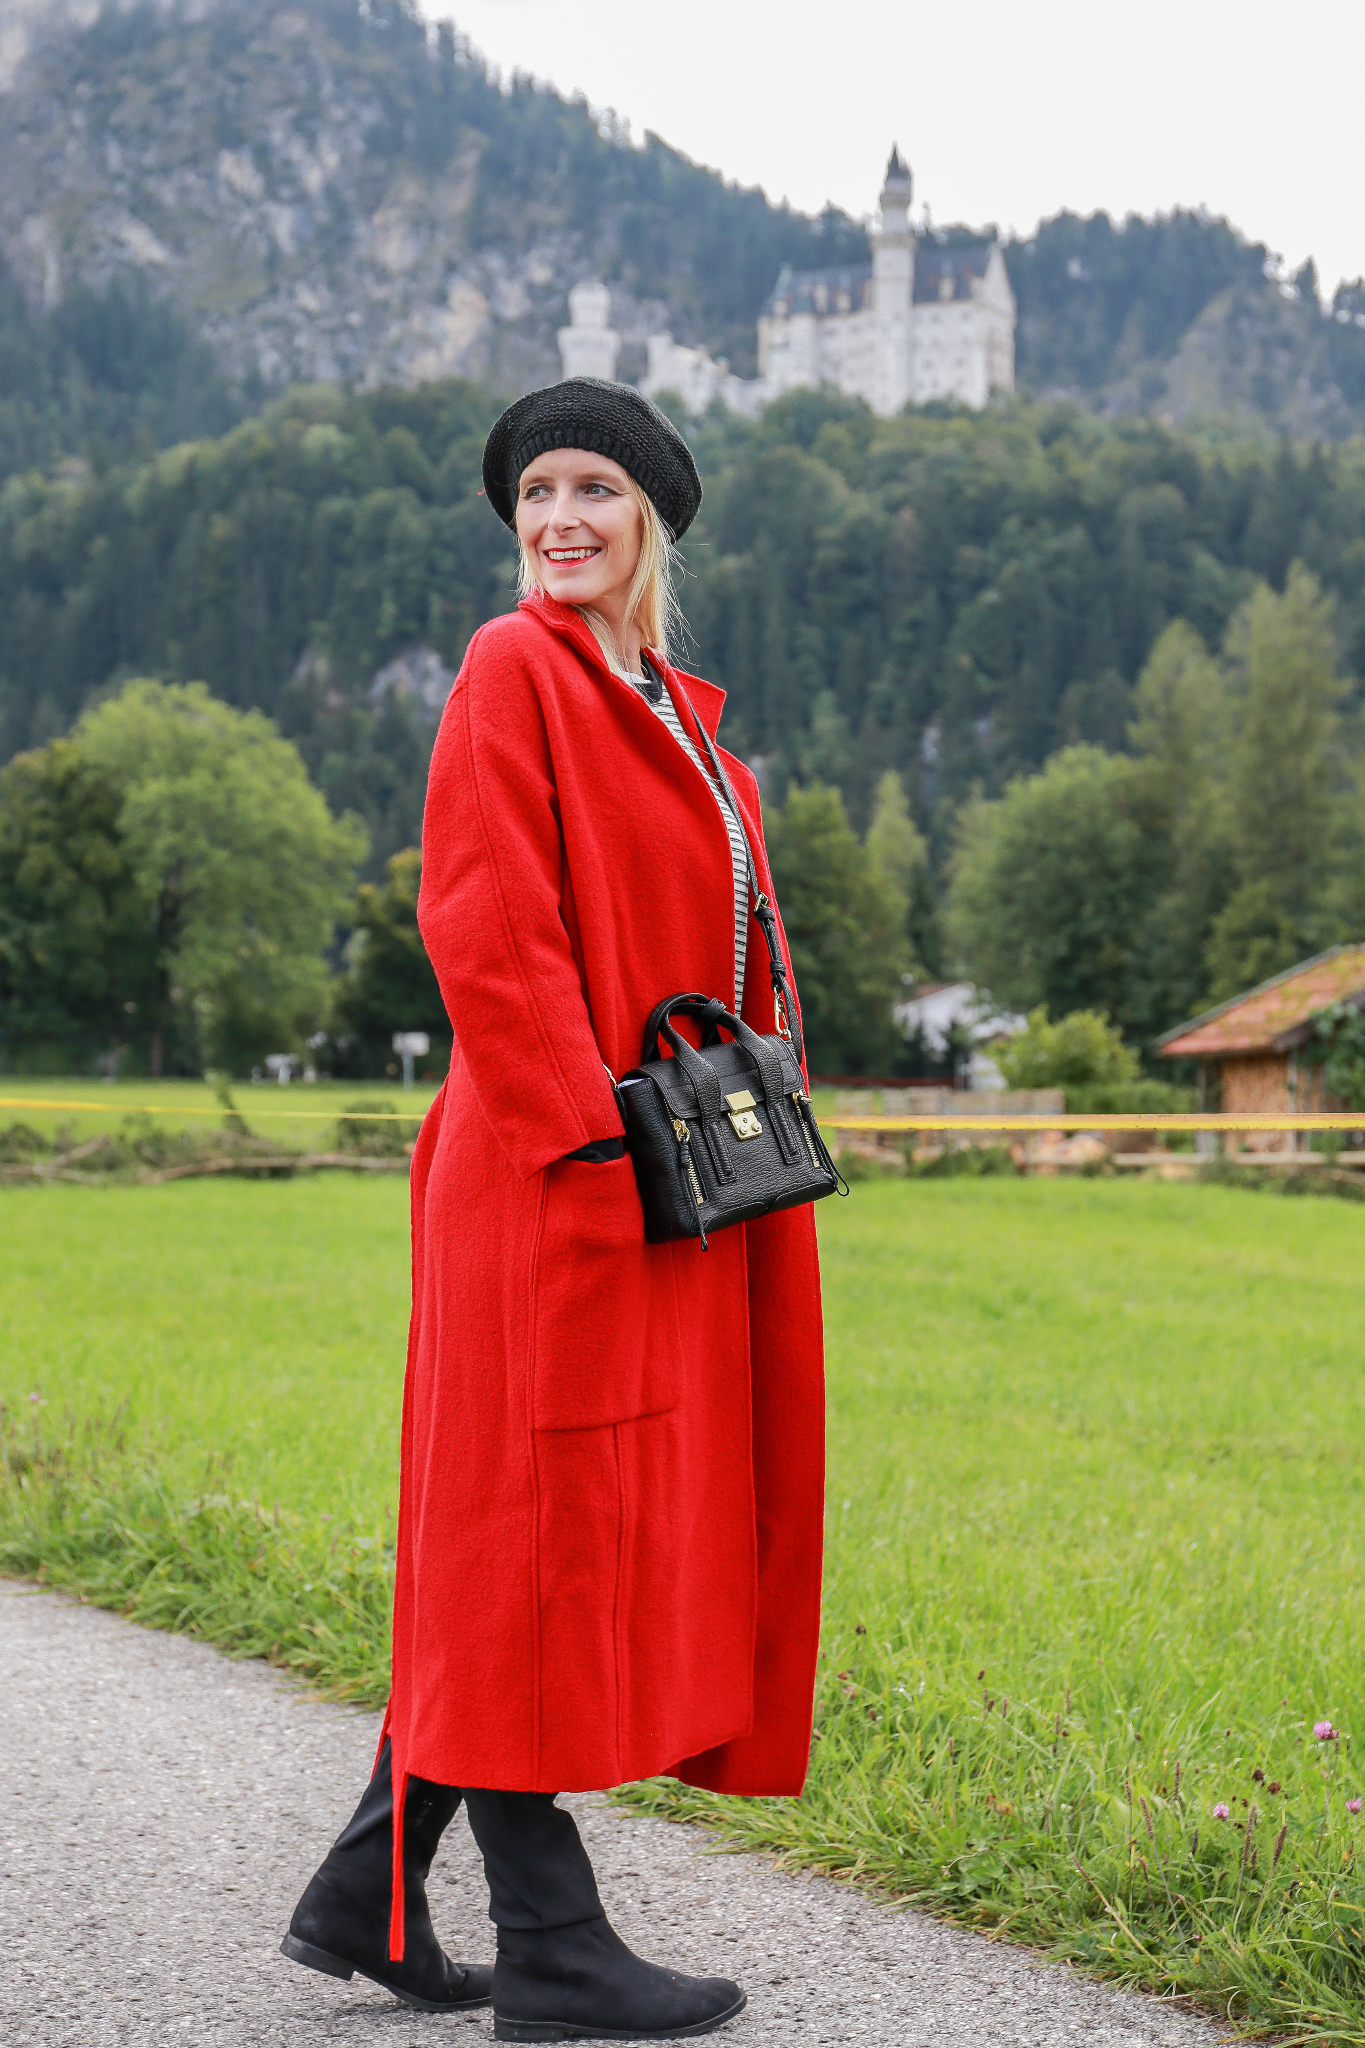 Fashion_Outfit_Red_Riding_Hood-6